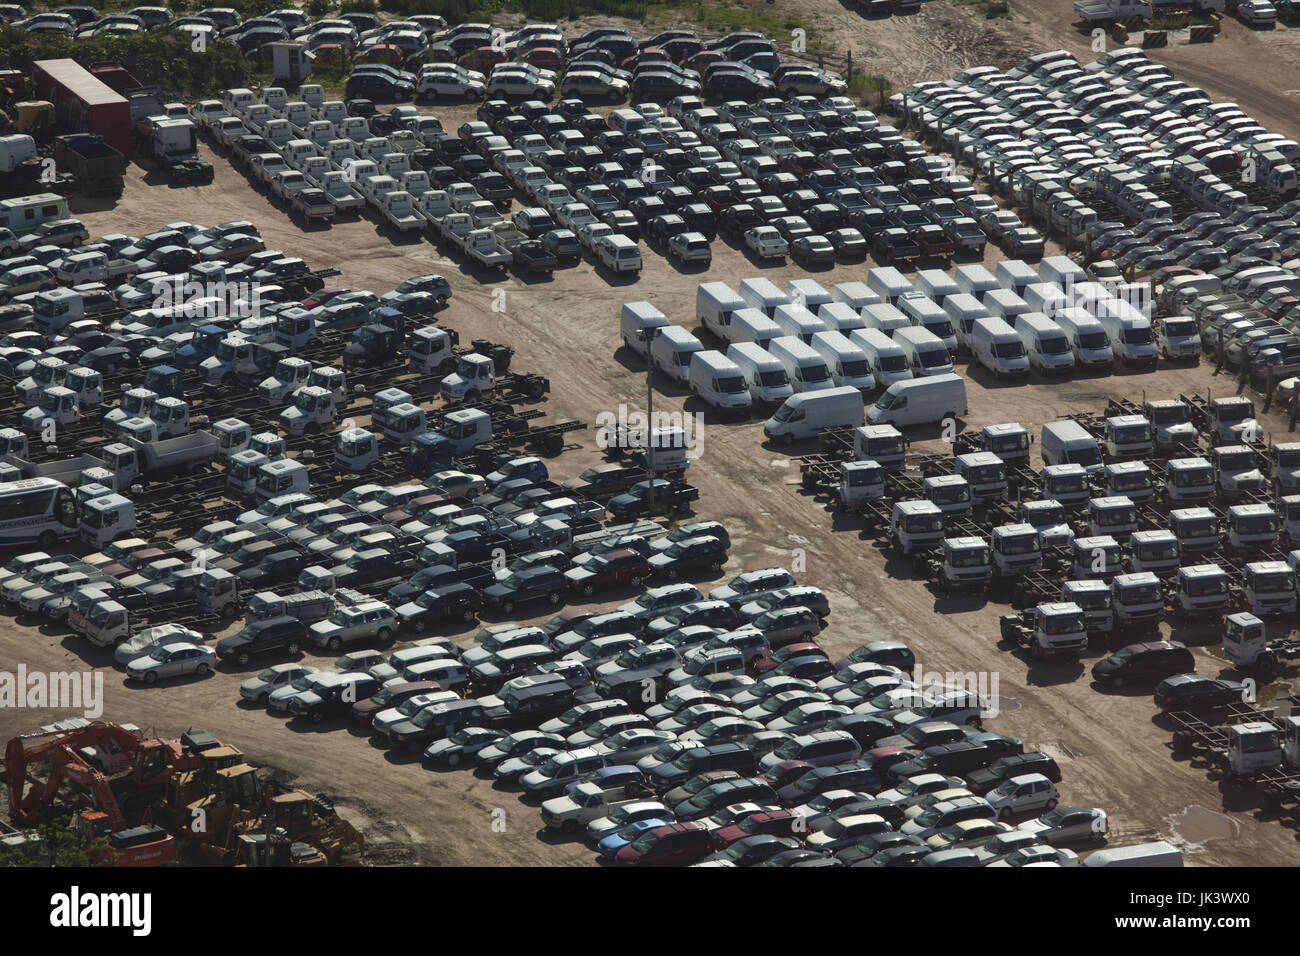 Uruguay, Montevideo, port view with new automobiles, aerial - Stock Image